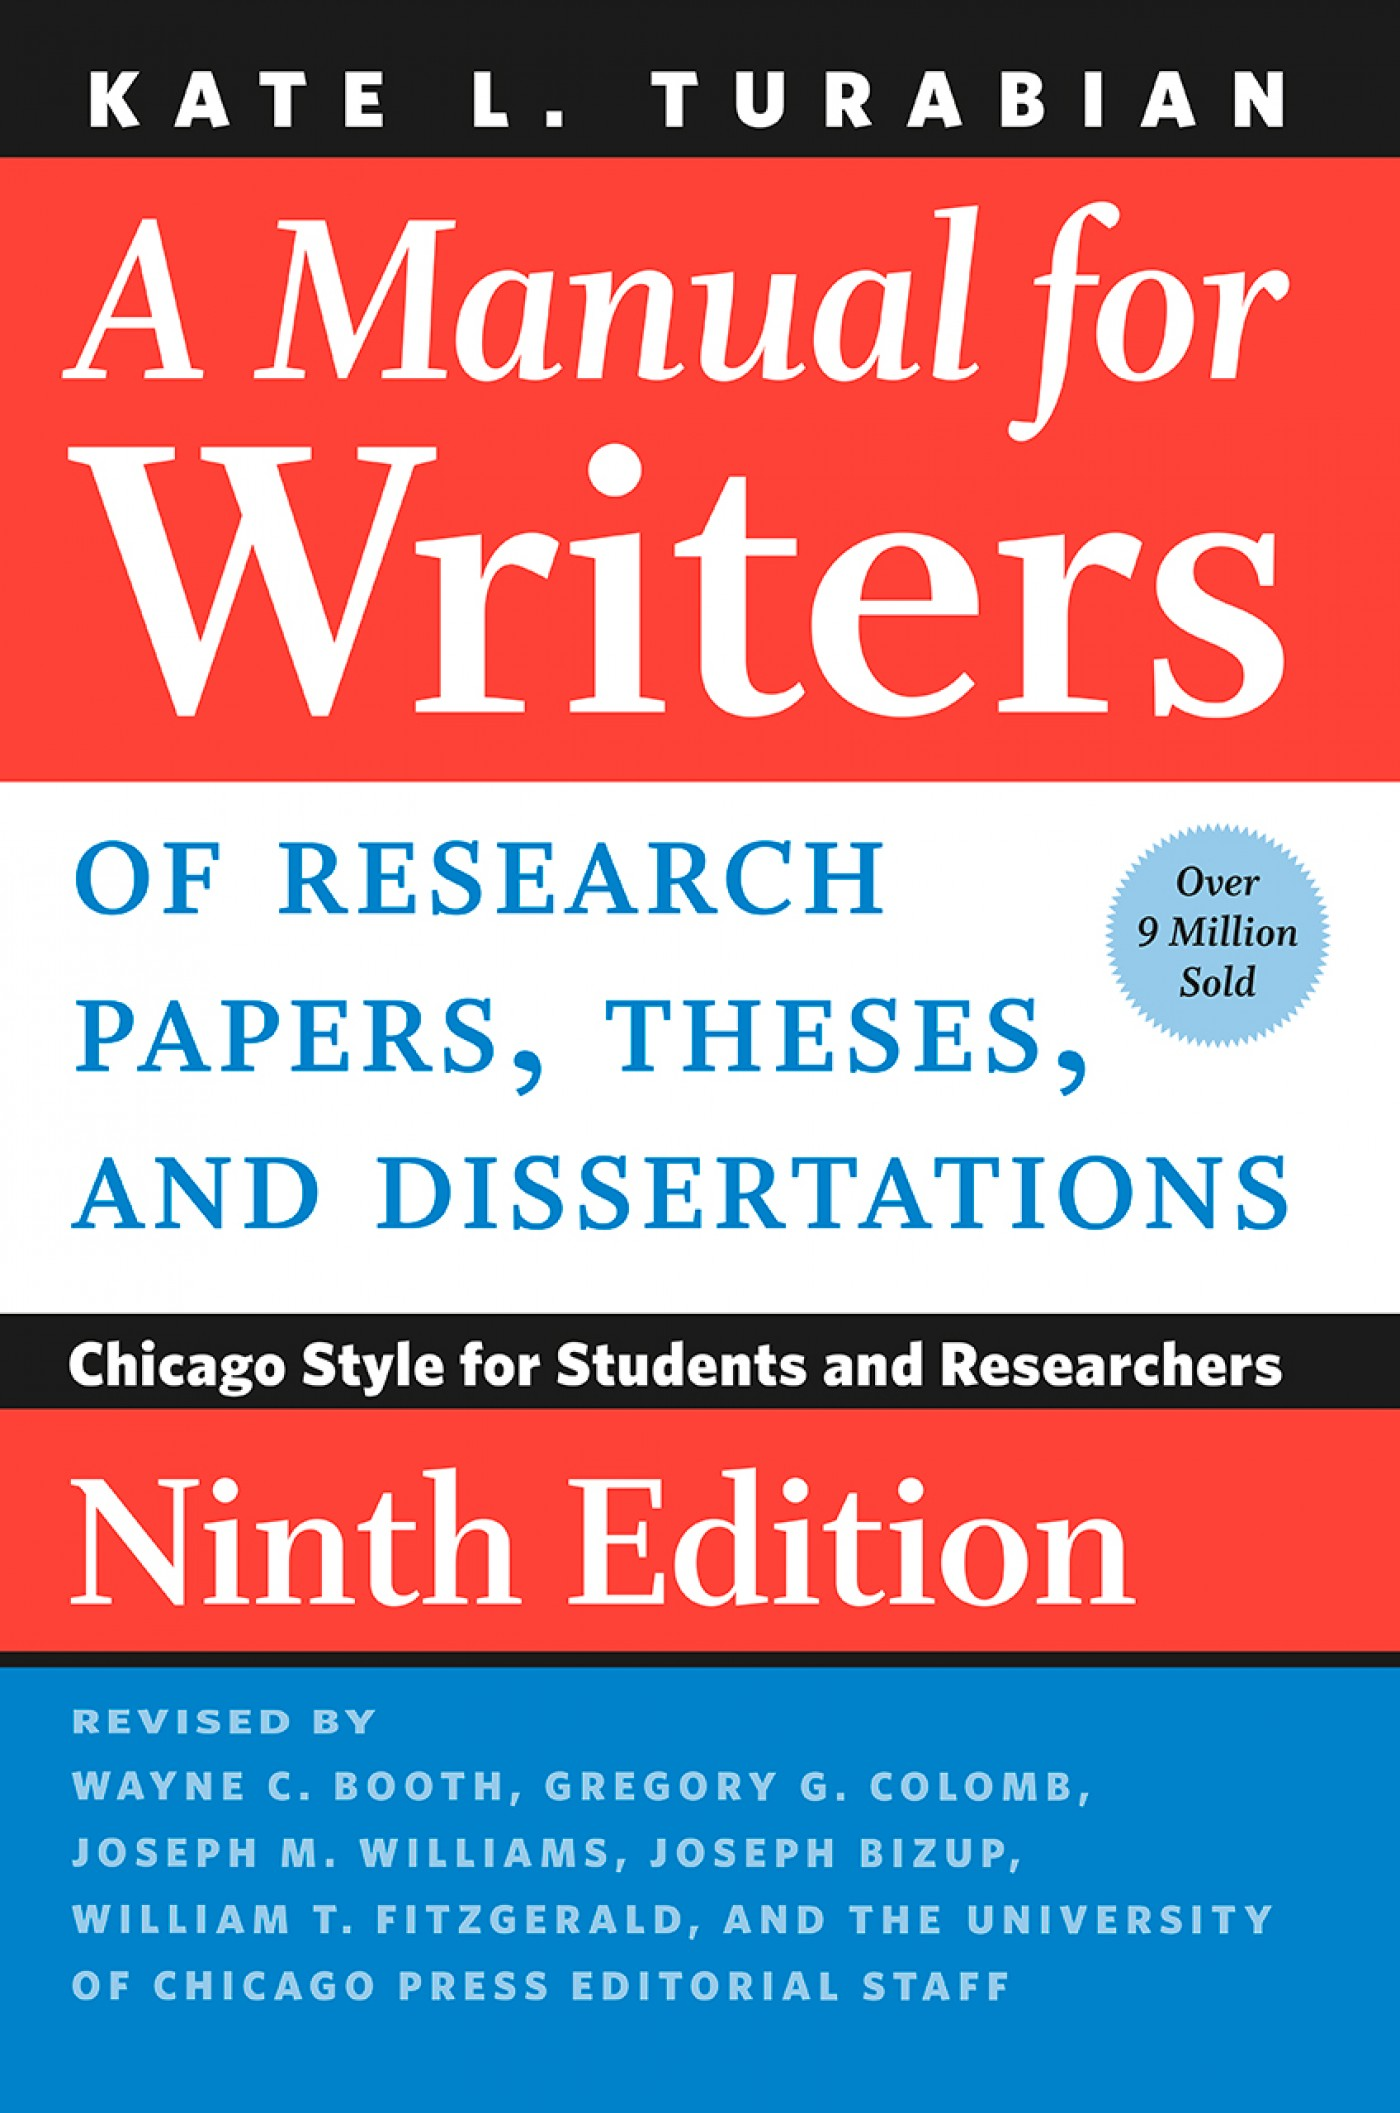 001 Manual For Writers Of Research Papers Theses And Dissertations Paper Magnificent A Amazon 9th Edition 8th 13 1400